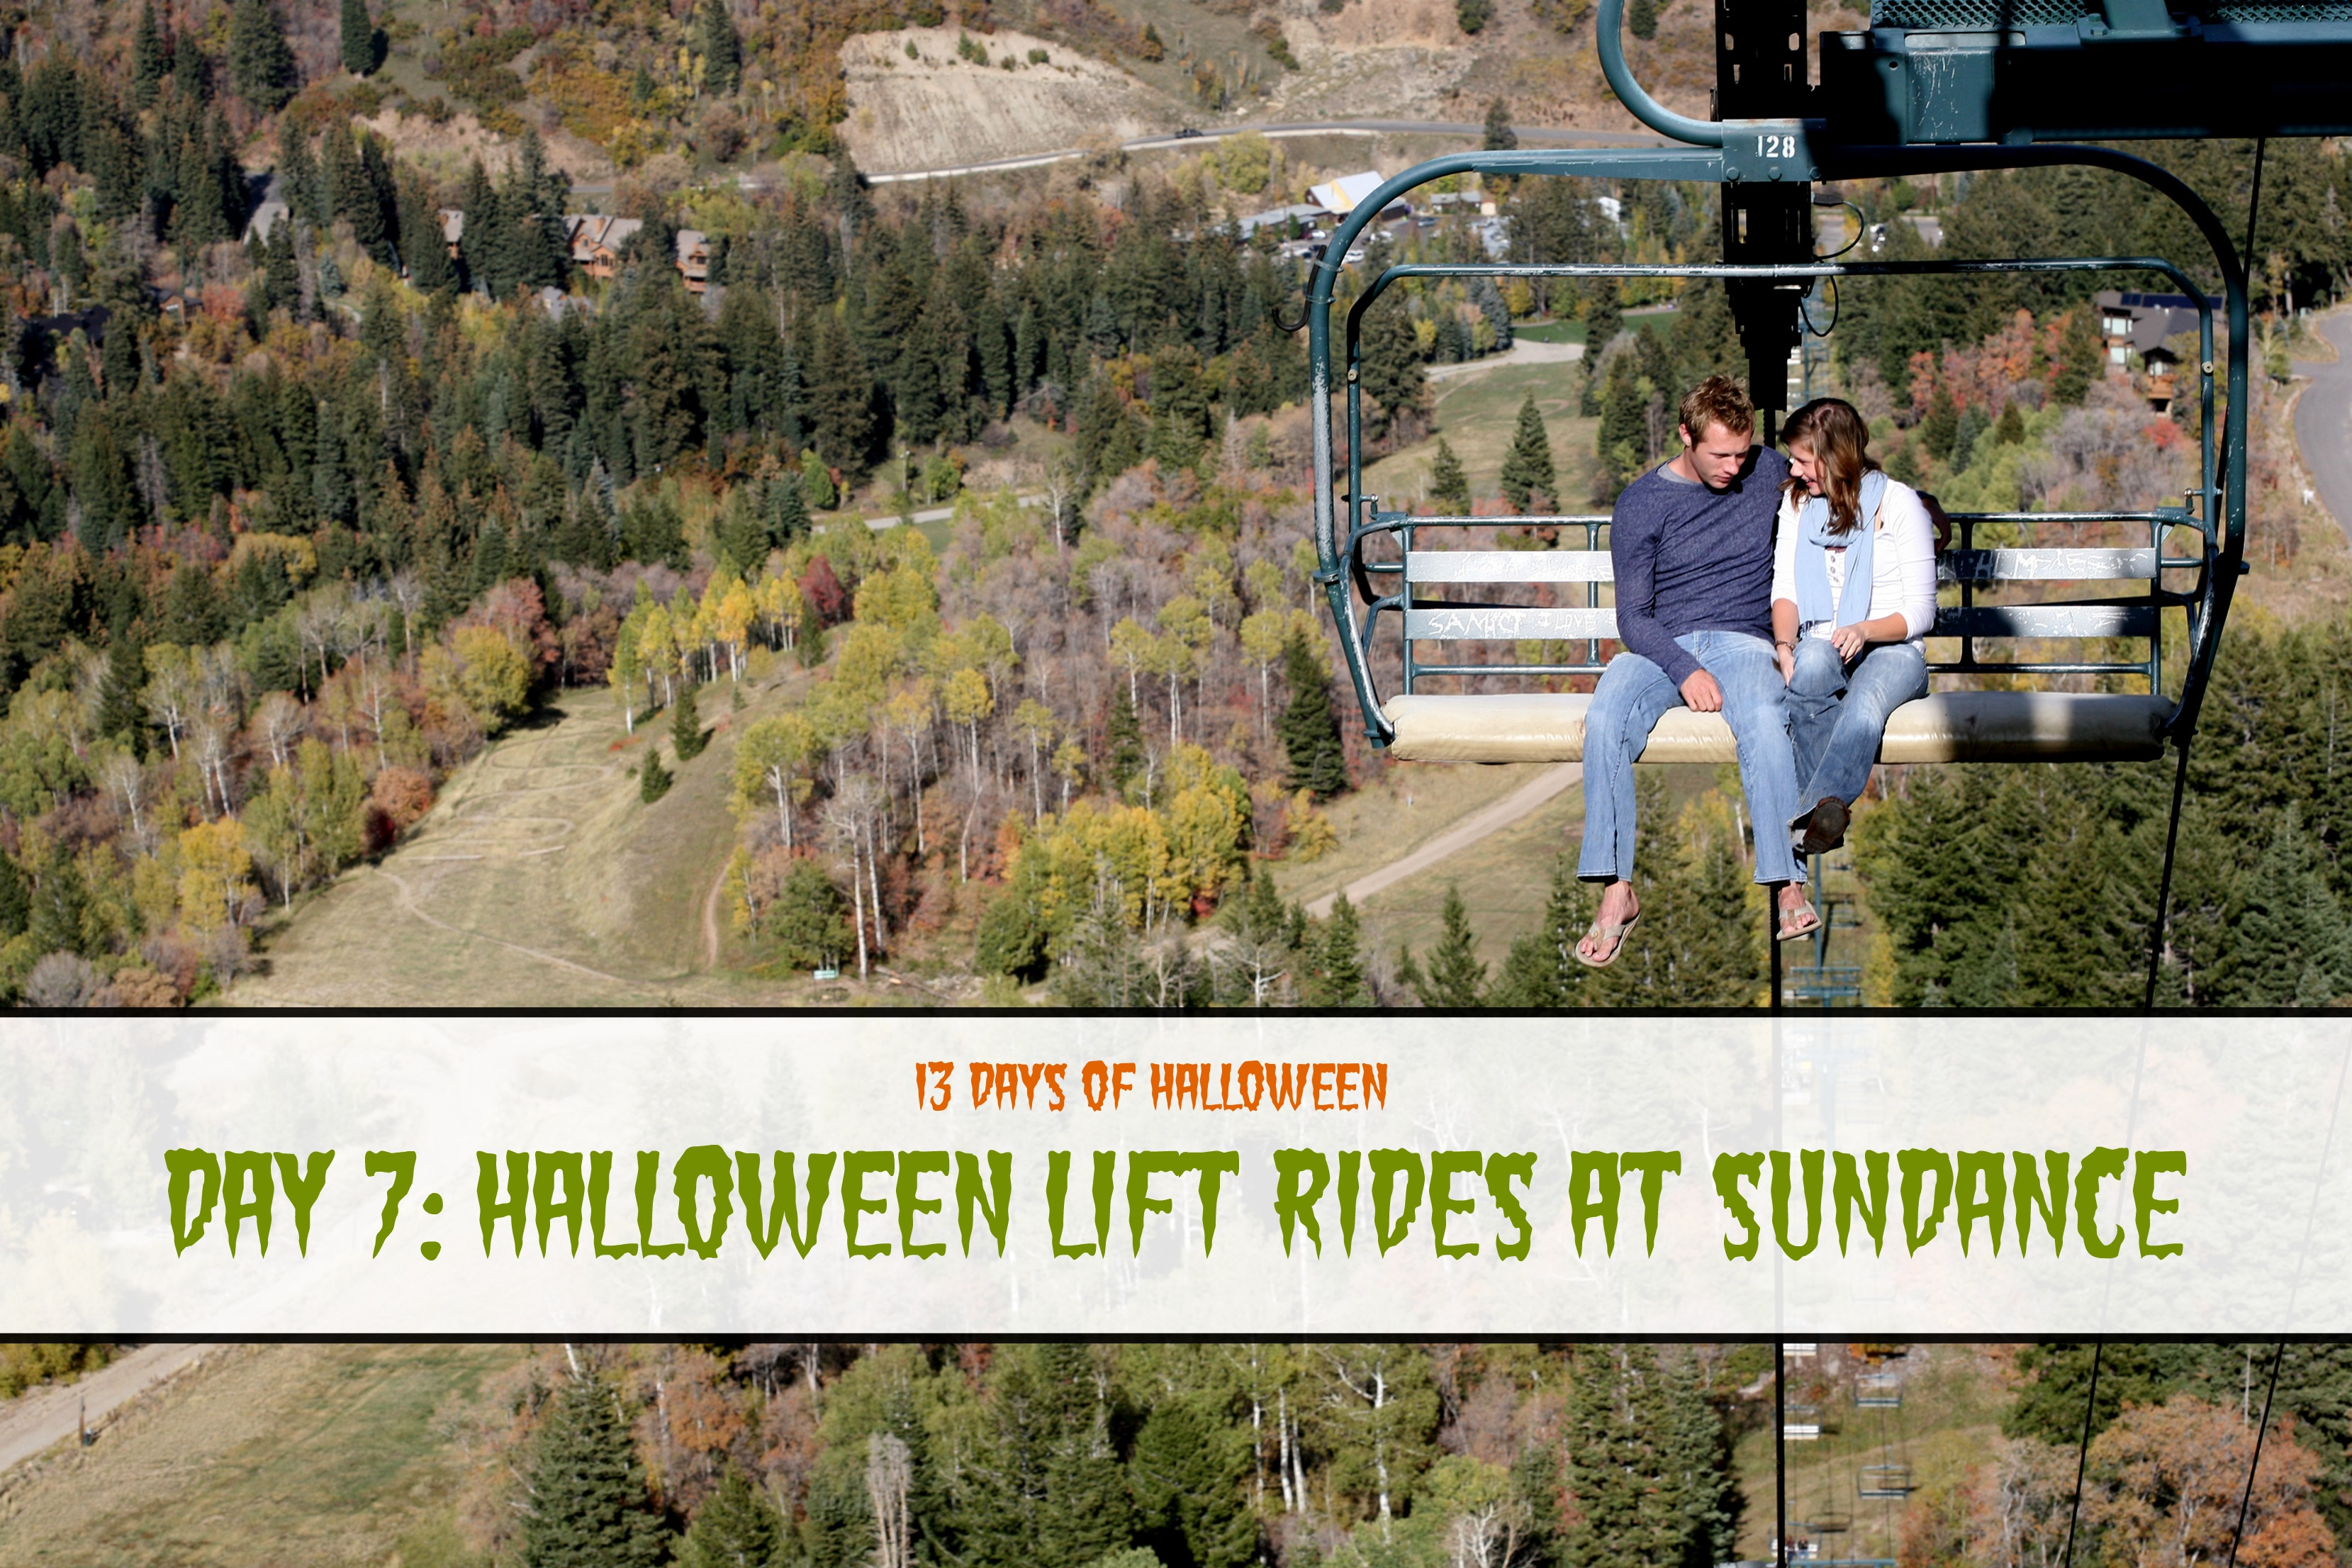 Day 7: Halloween Lift Ride